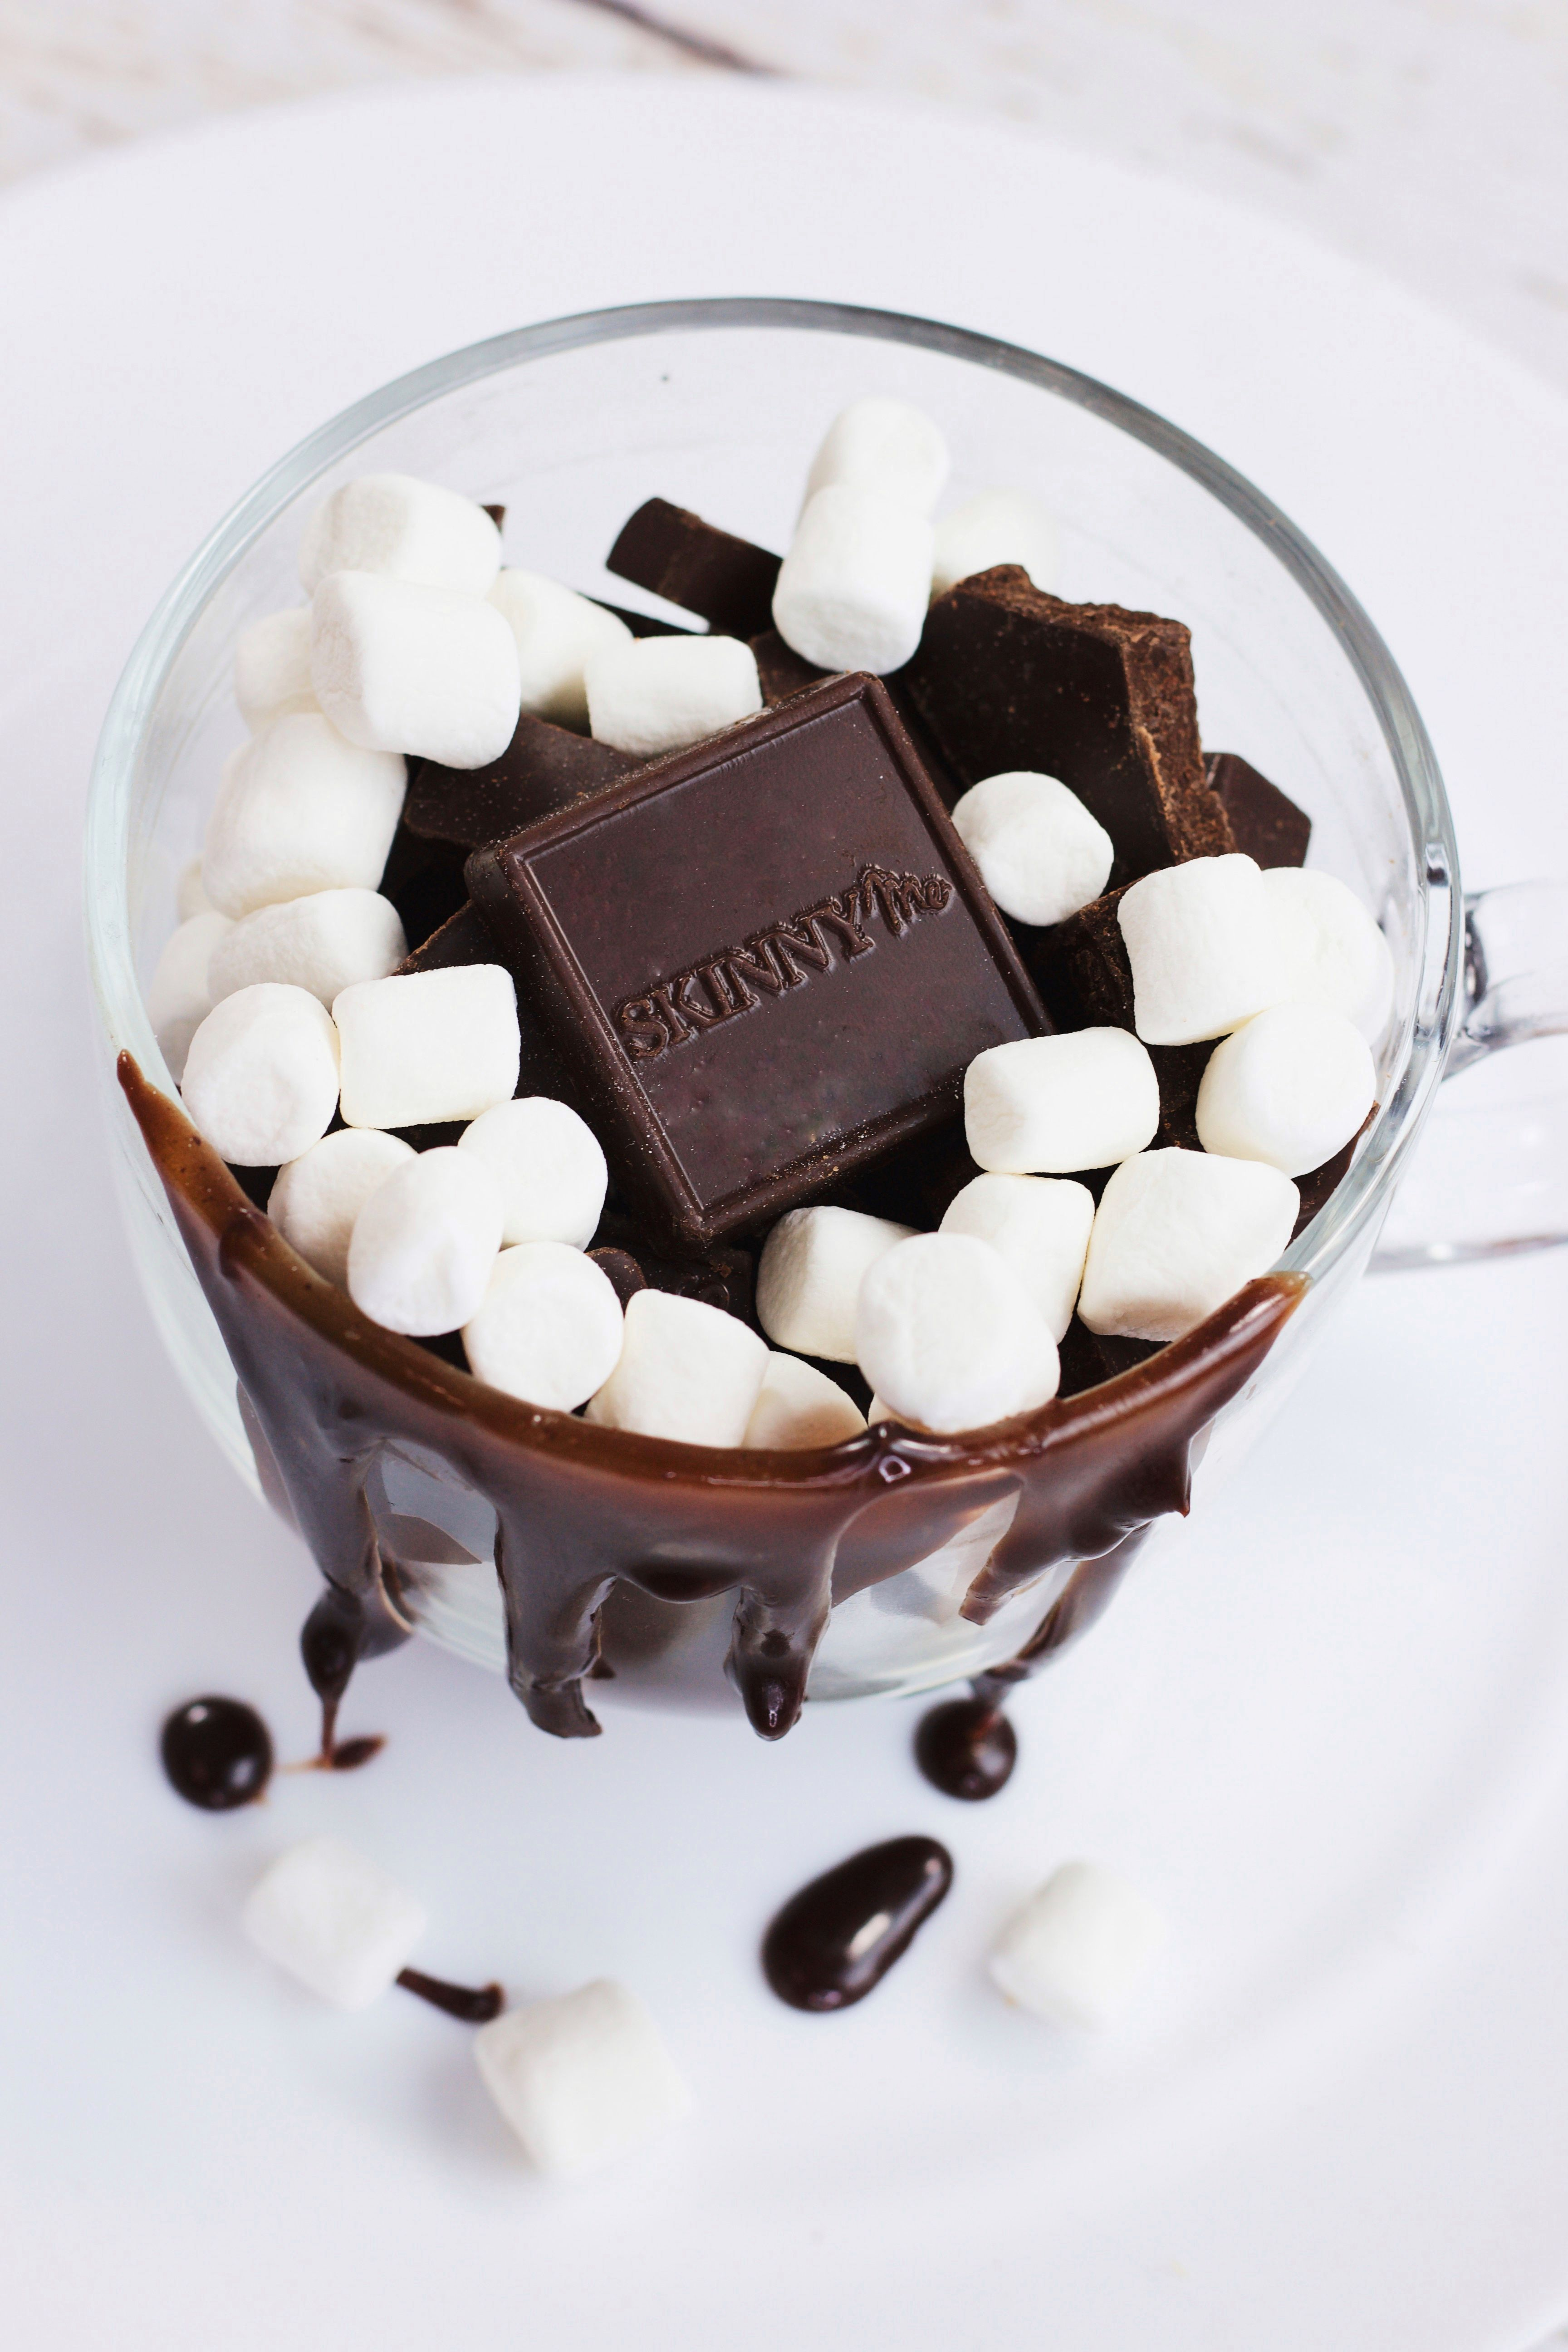 Giveaway Alert Happy National Hot Chocolate Day Today We Re Giving One Lucky Winner Two Boxes Of Our Zero Sugar Skinnyme Chocolates In 2020 Sugar Free Hot Chocolate